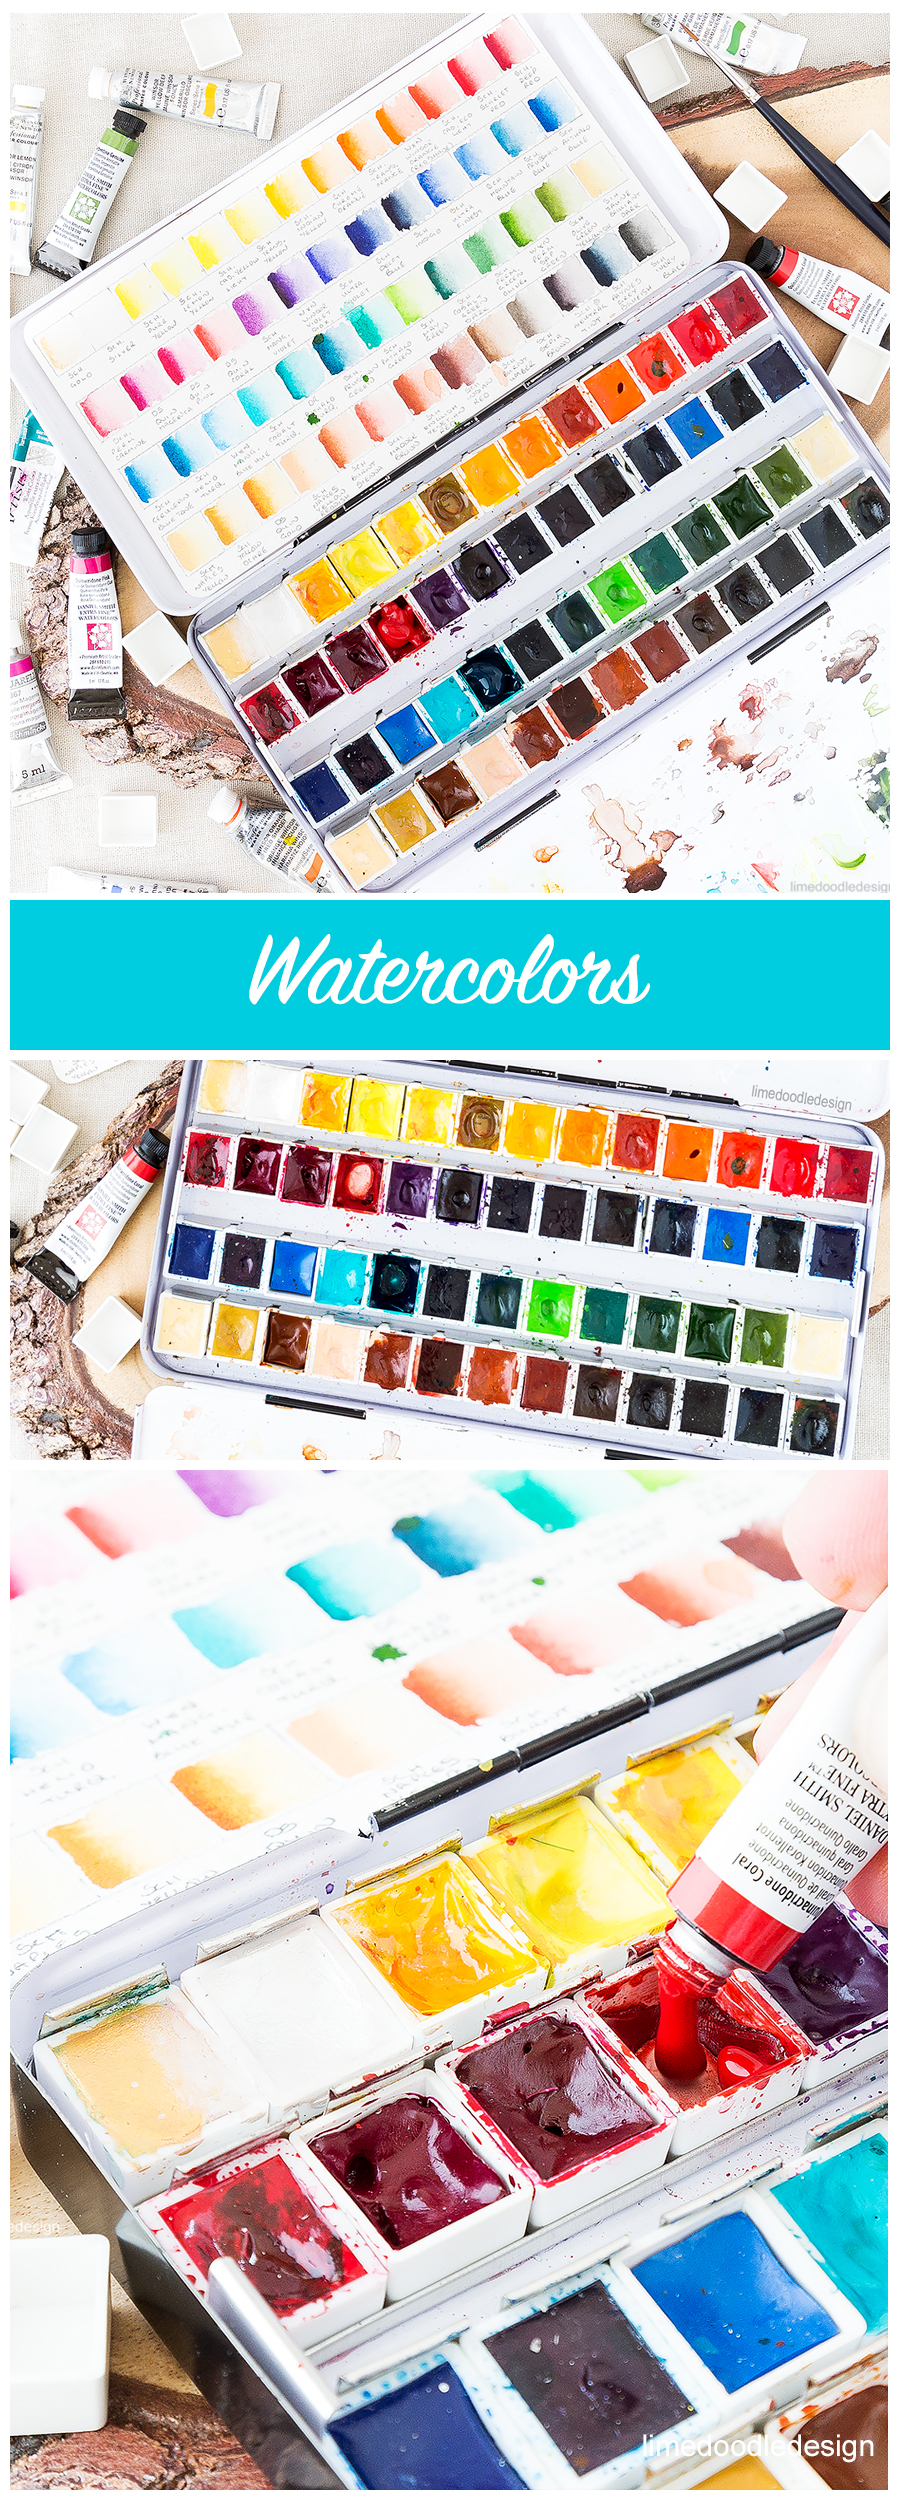 My favorite watercolors and how I chose them. Find out more by clicking on the following link: http://limedoodledesign.com/2016/07/my-favorite-watercolors-and-how-i-chose-them/